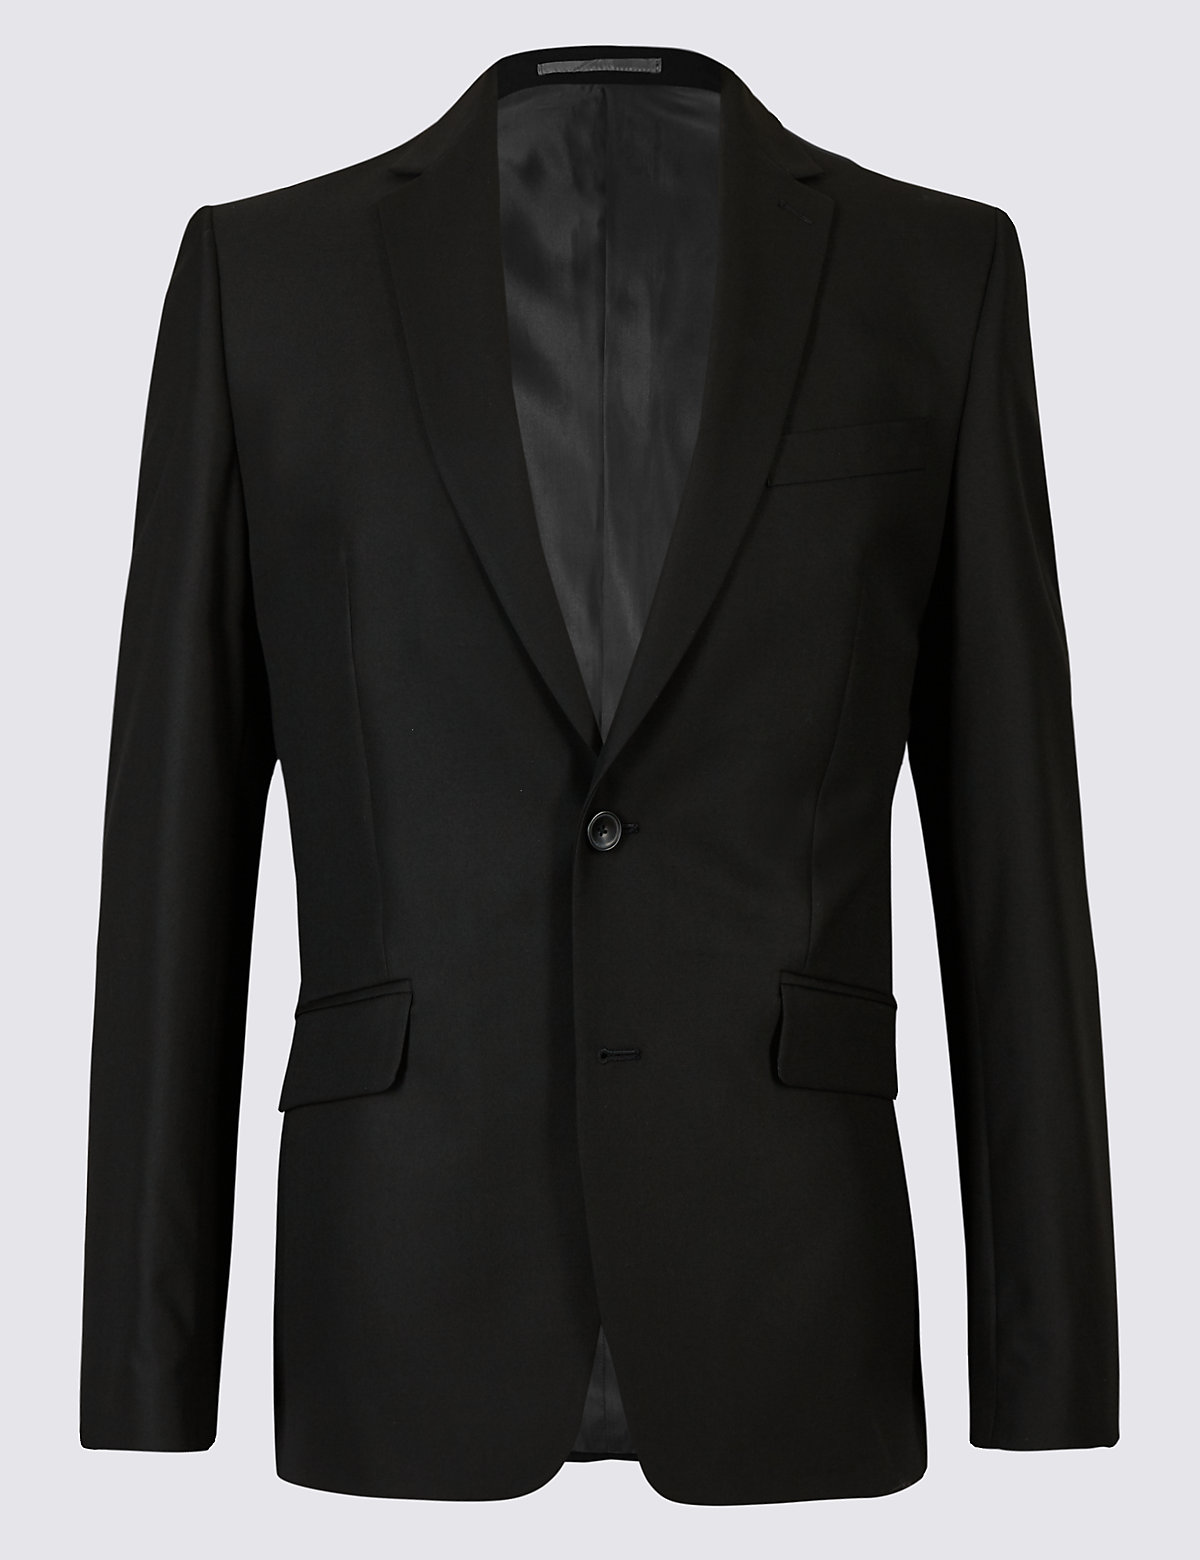 Marks & Spencer Black Slim Fit Jacket